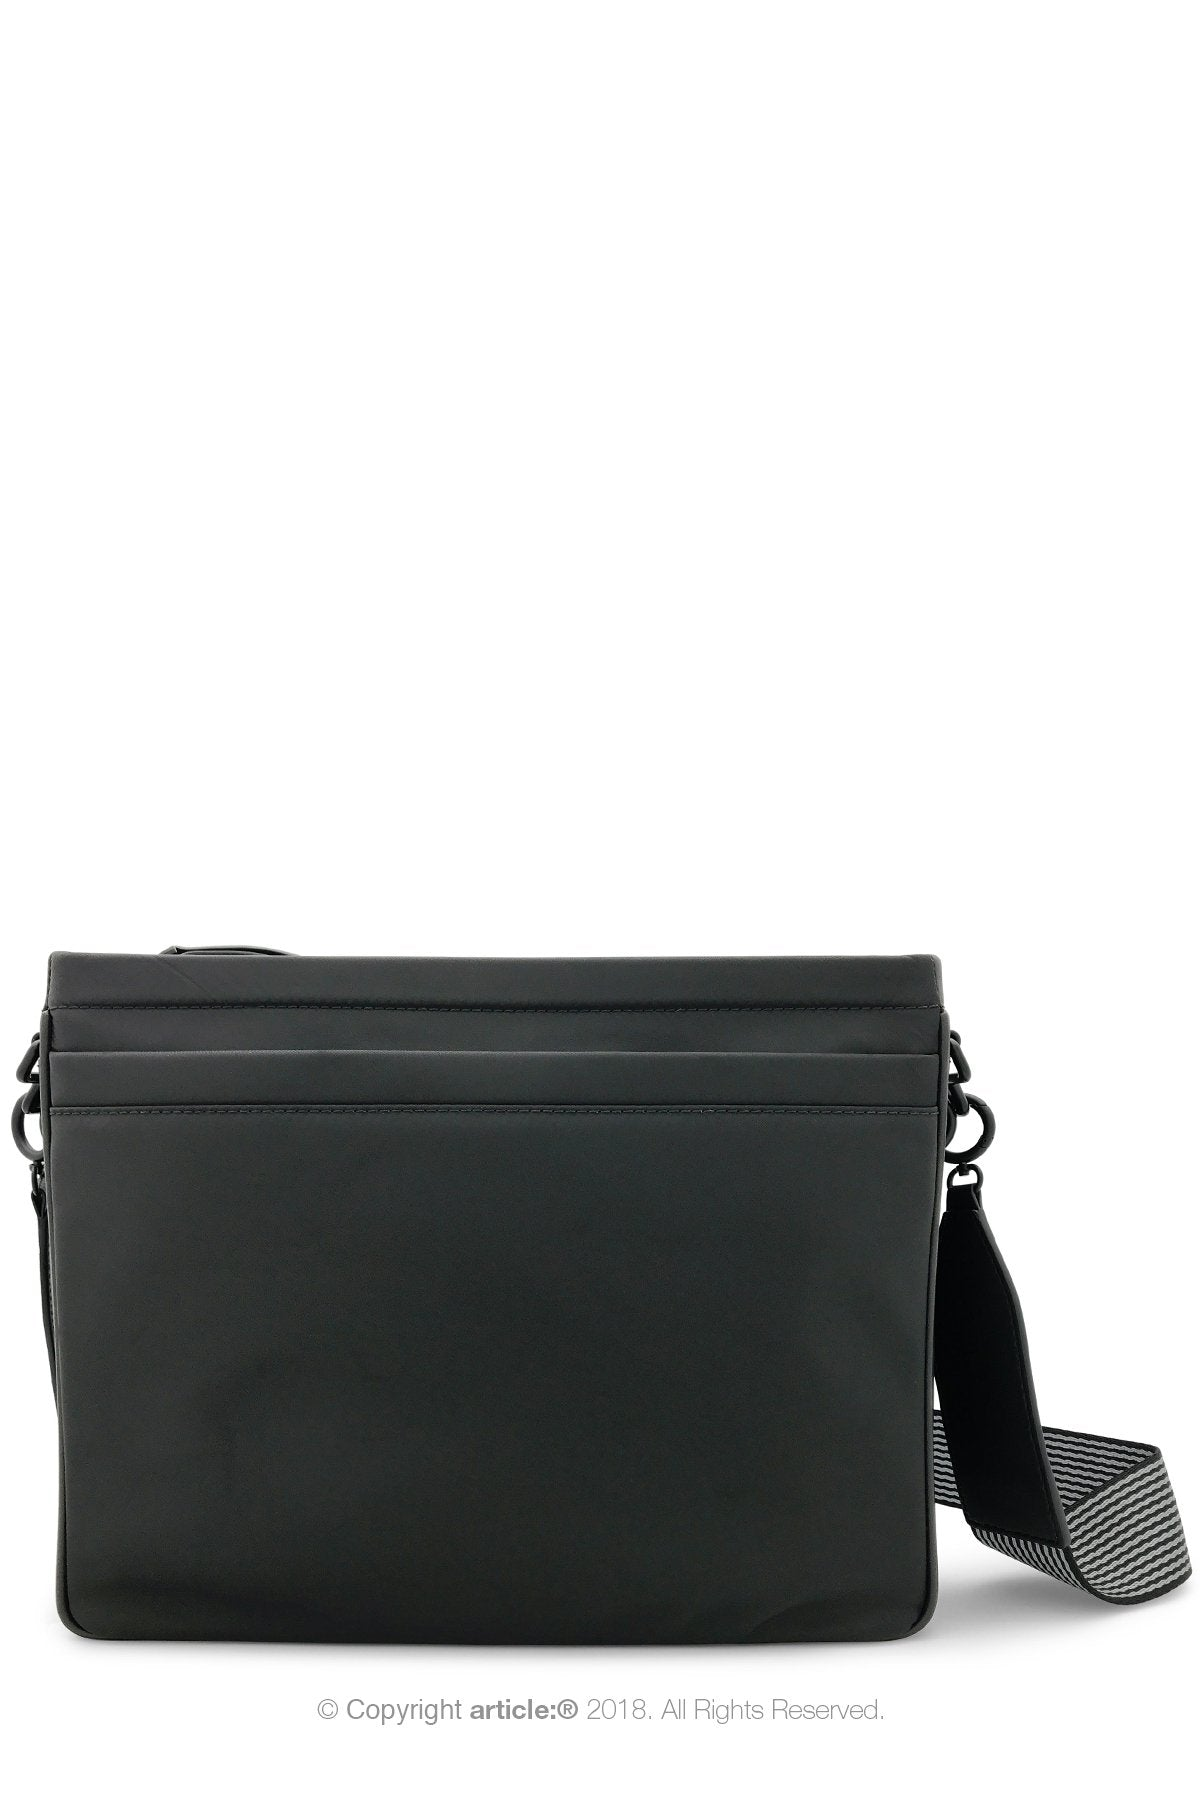 article: #160 Bag Messenger - Noir